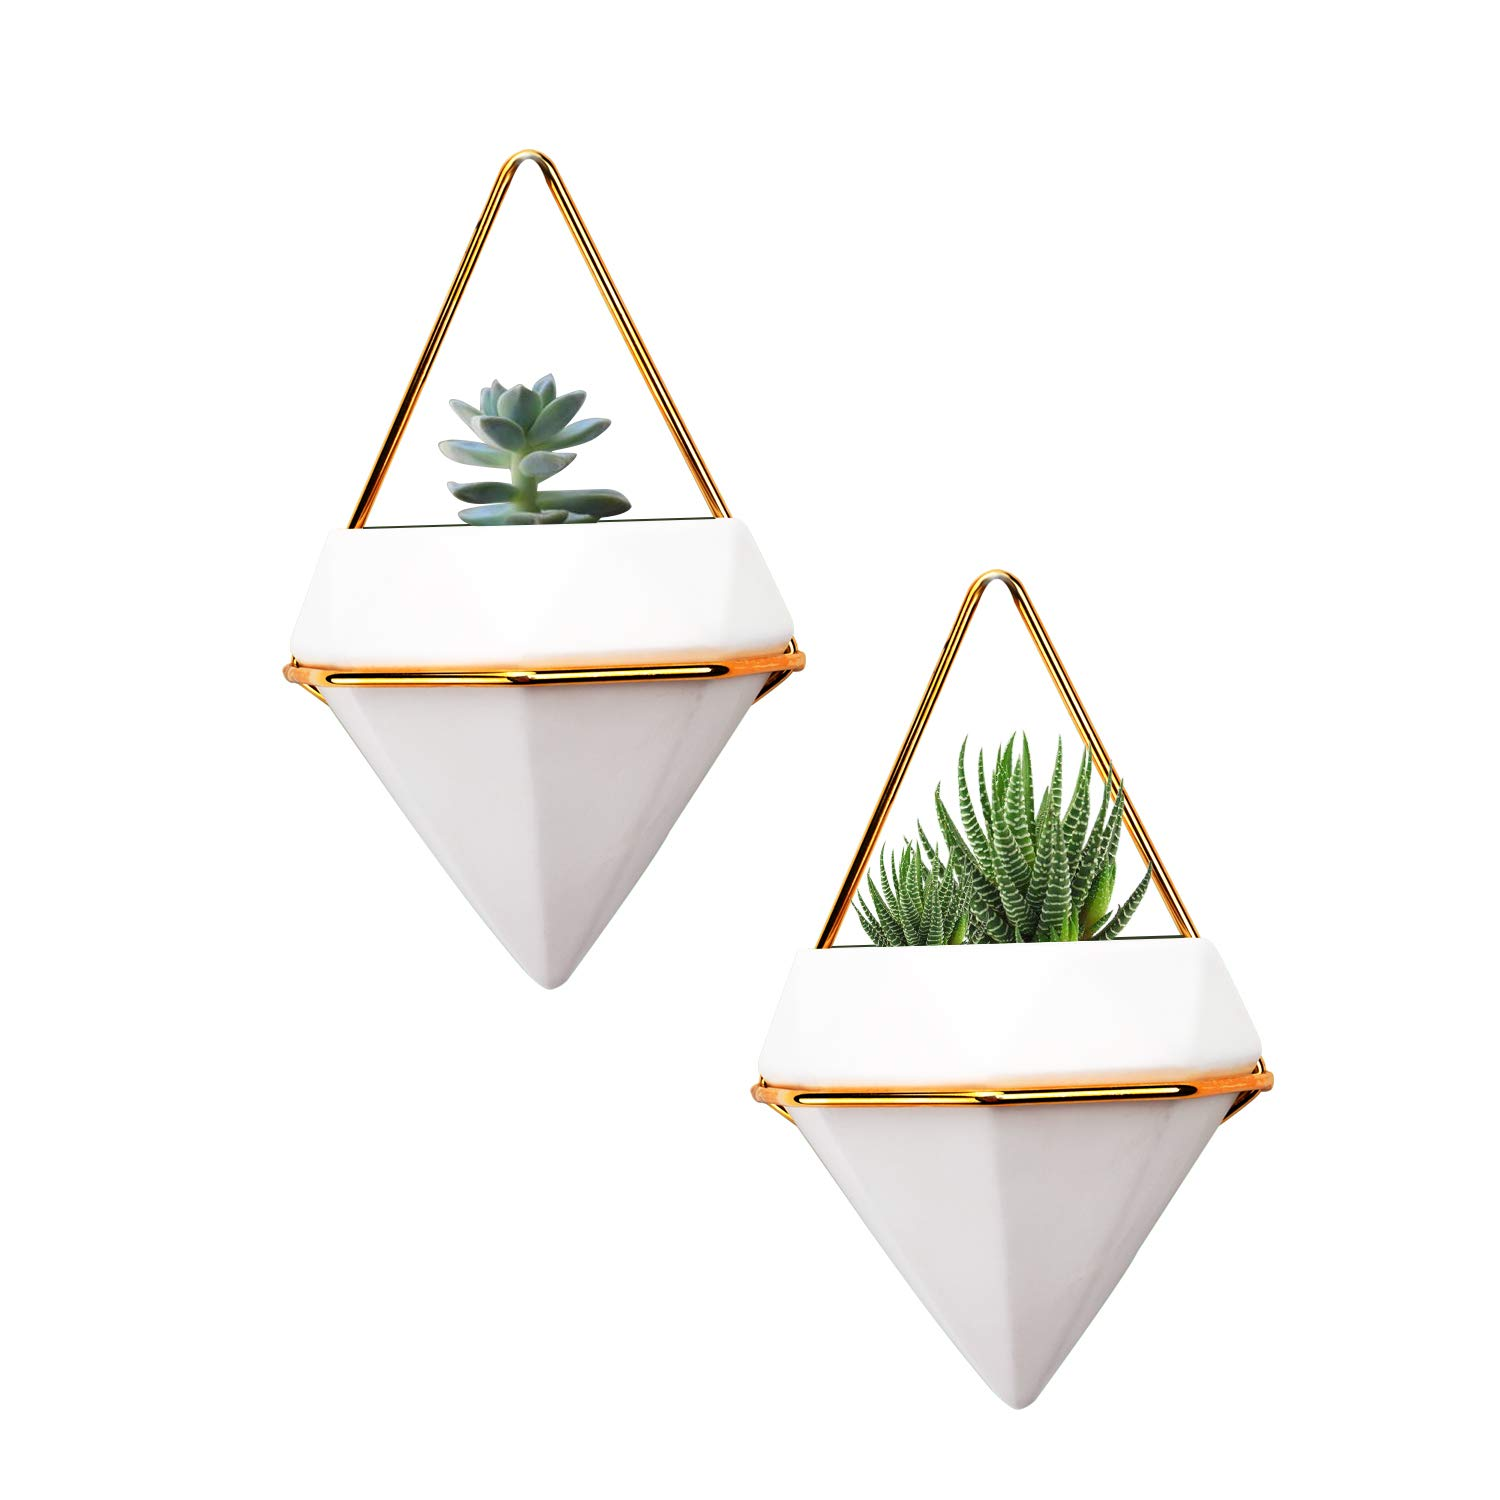 Hanging Planter Vase Geometric Wall Decor Ceramic Container Small Wall Planters Hanging with Metal Frame – Great for Succulent Plants Air Plant Mini Cactus Faux Plants and More